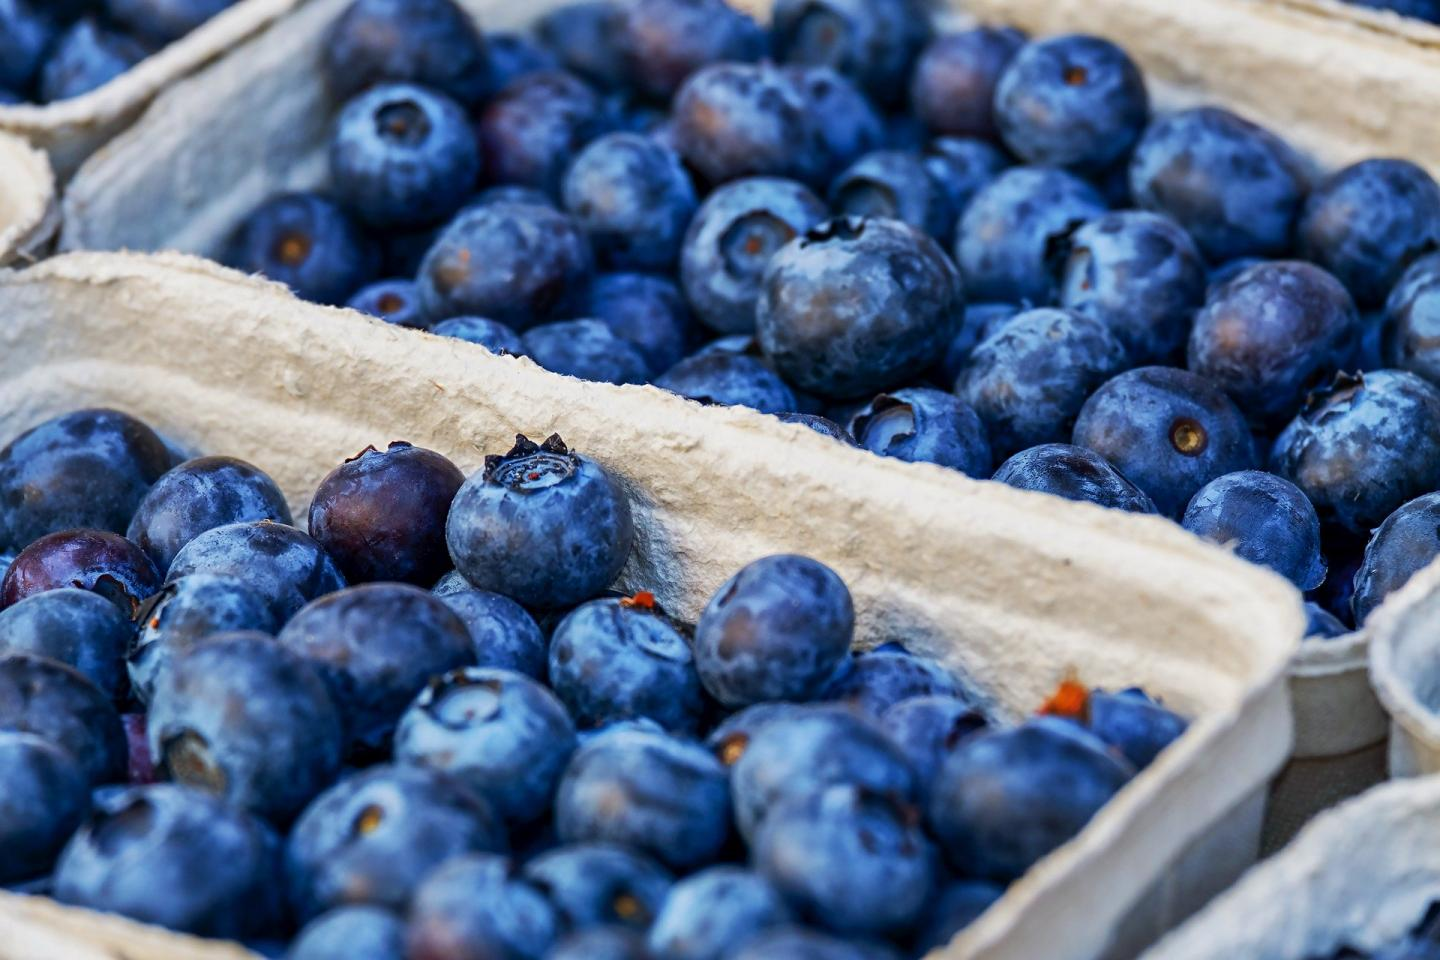 New Compound from Blueberries